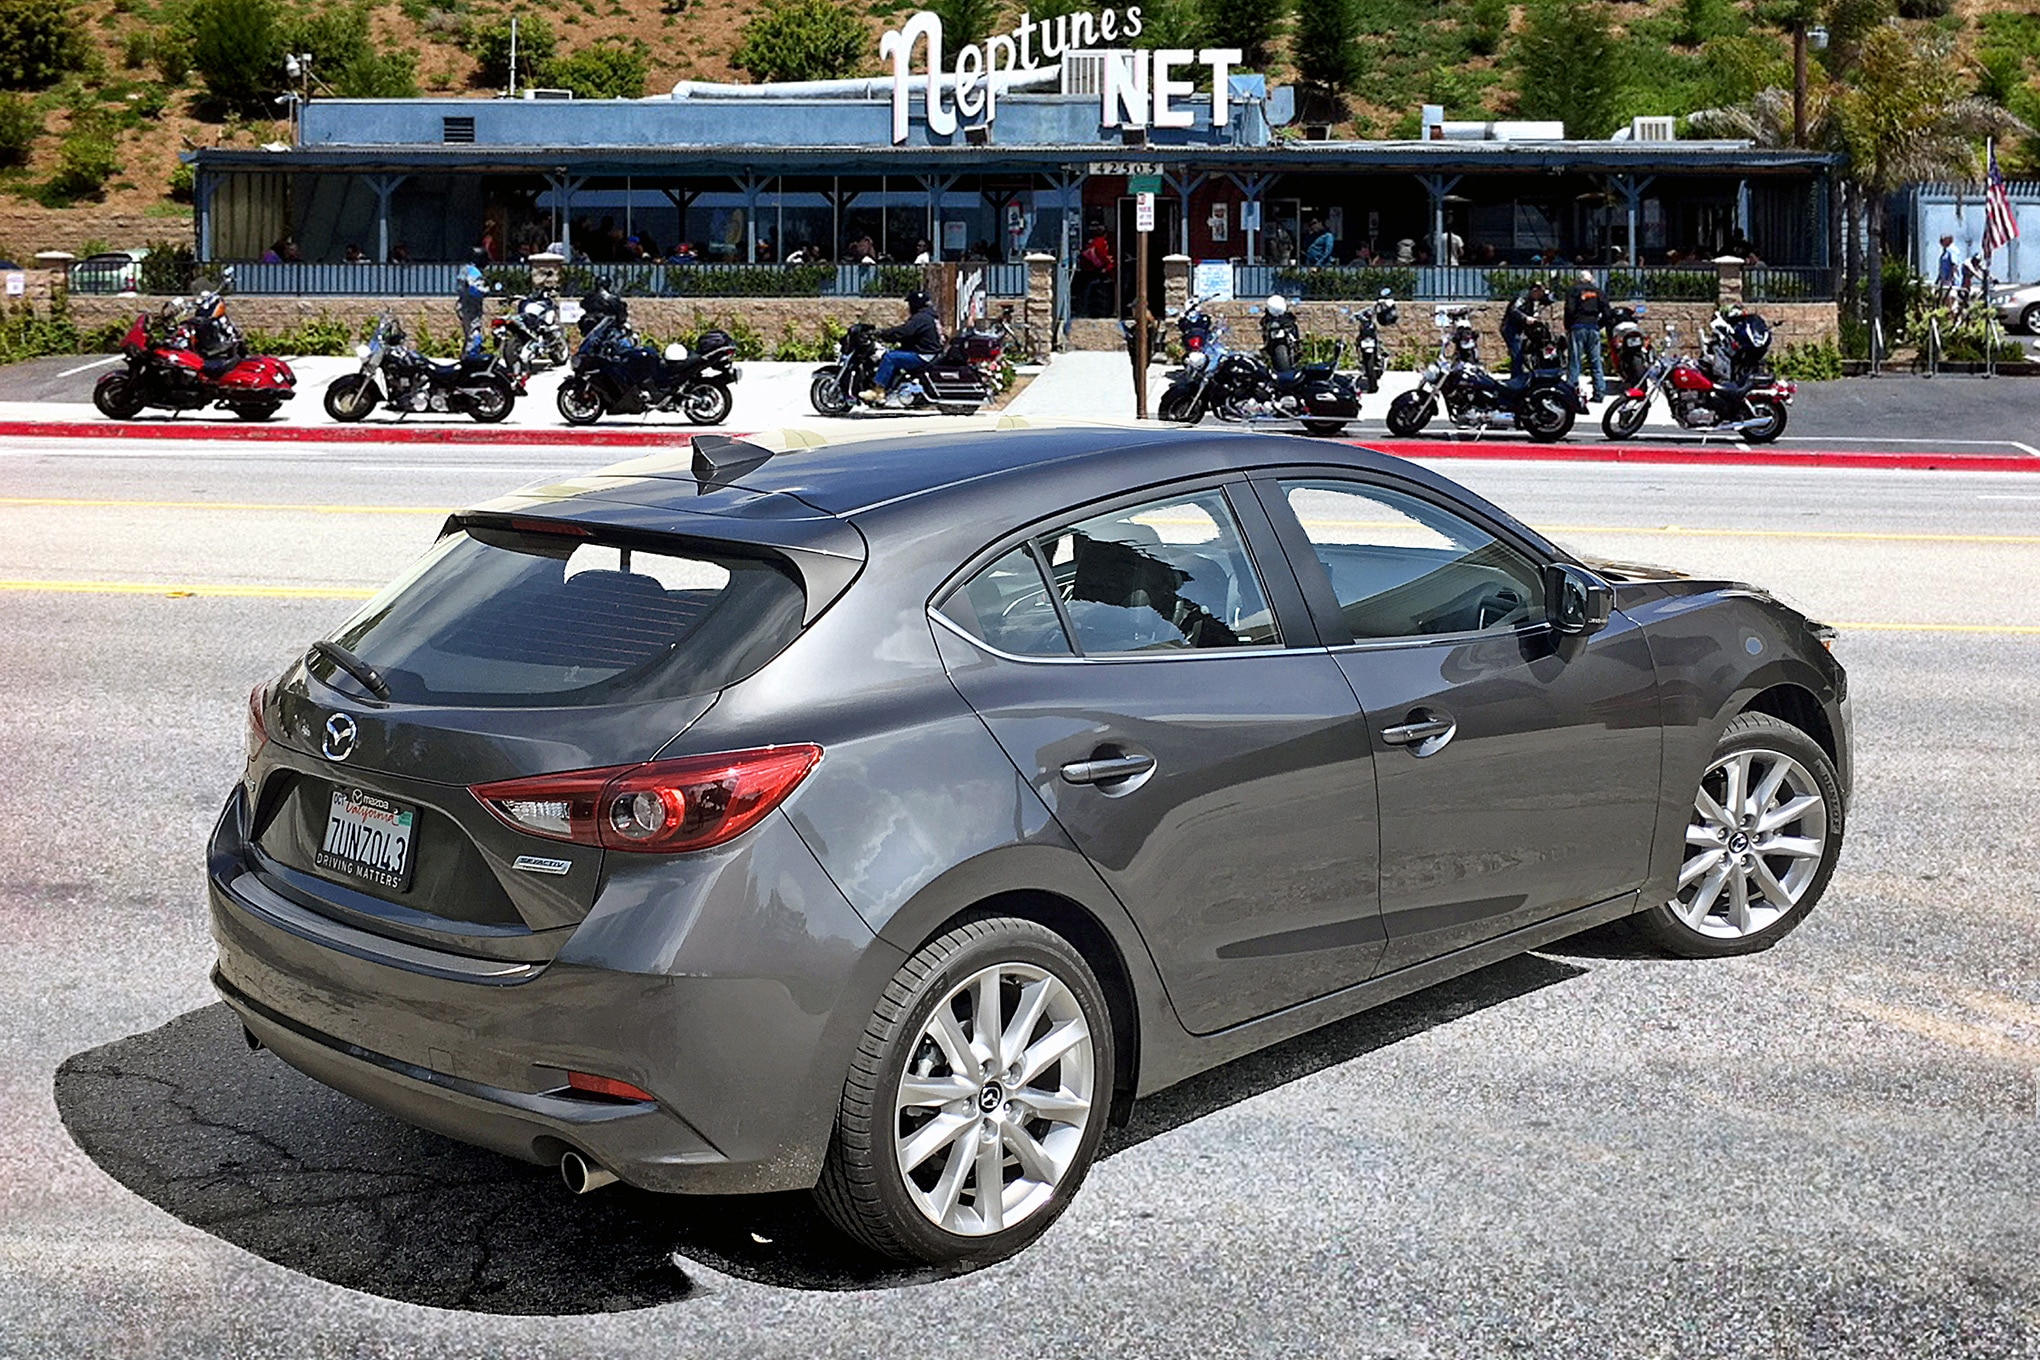 Mazda 3 Owners Manual: Driving on Uneven Road